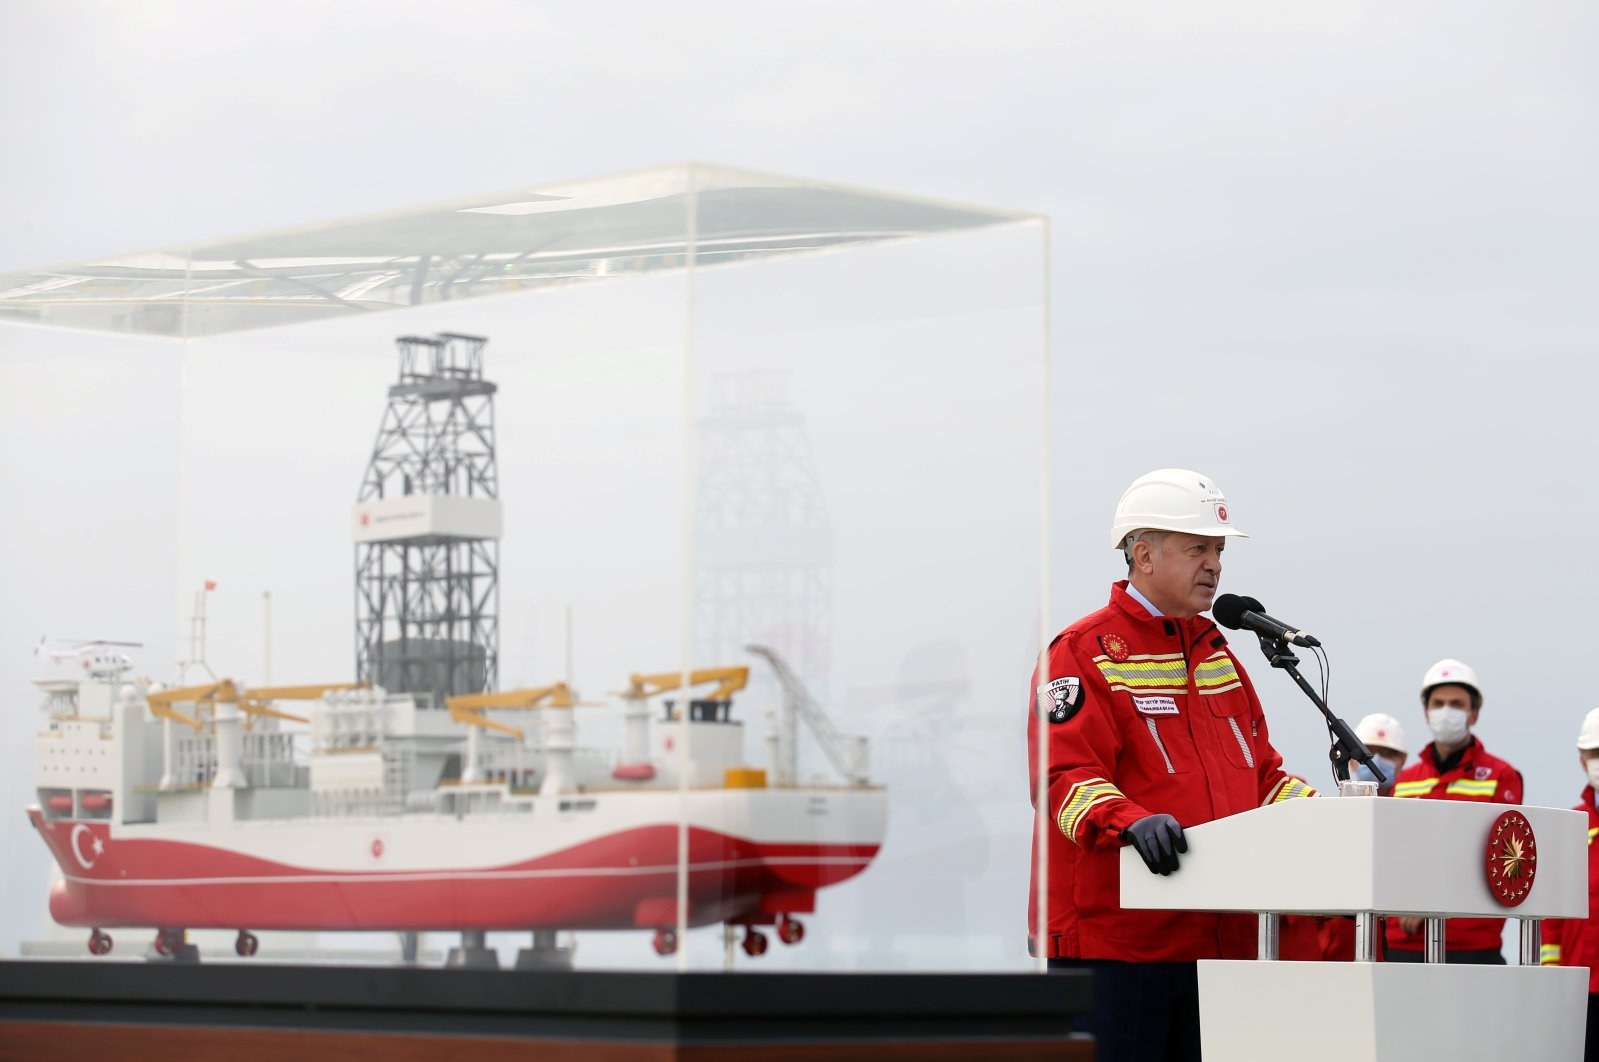 President Recep Tayyip Erdoğan speaks on the deck of the drilling vessel Fatih off the Black Sea city of Zonguldak, Turkey, Oct. 17, 2020. (Photo by the Presidential Press Office via Reuters )